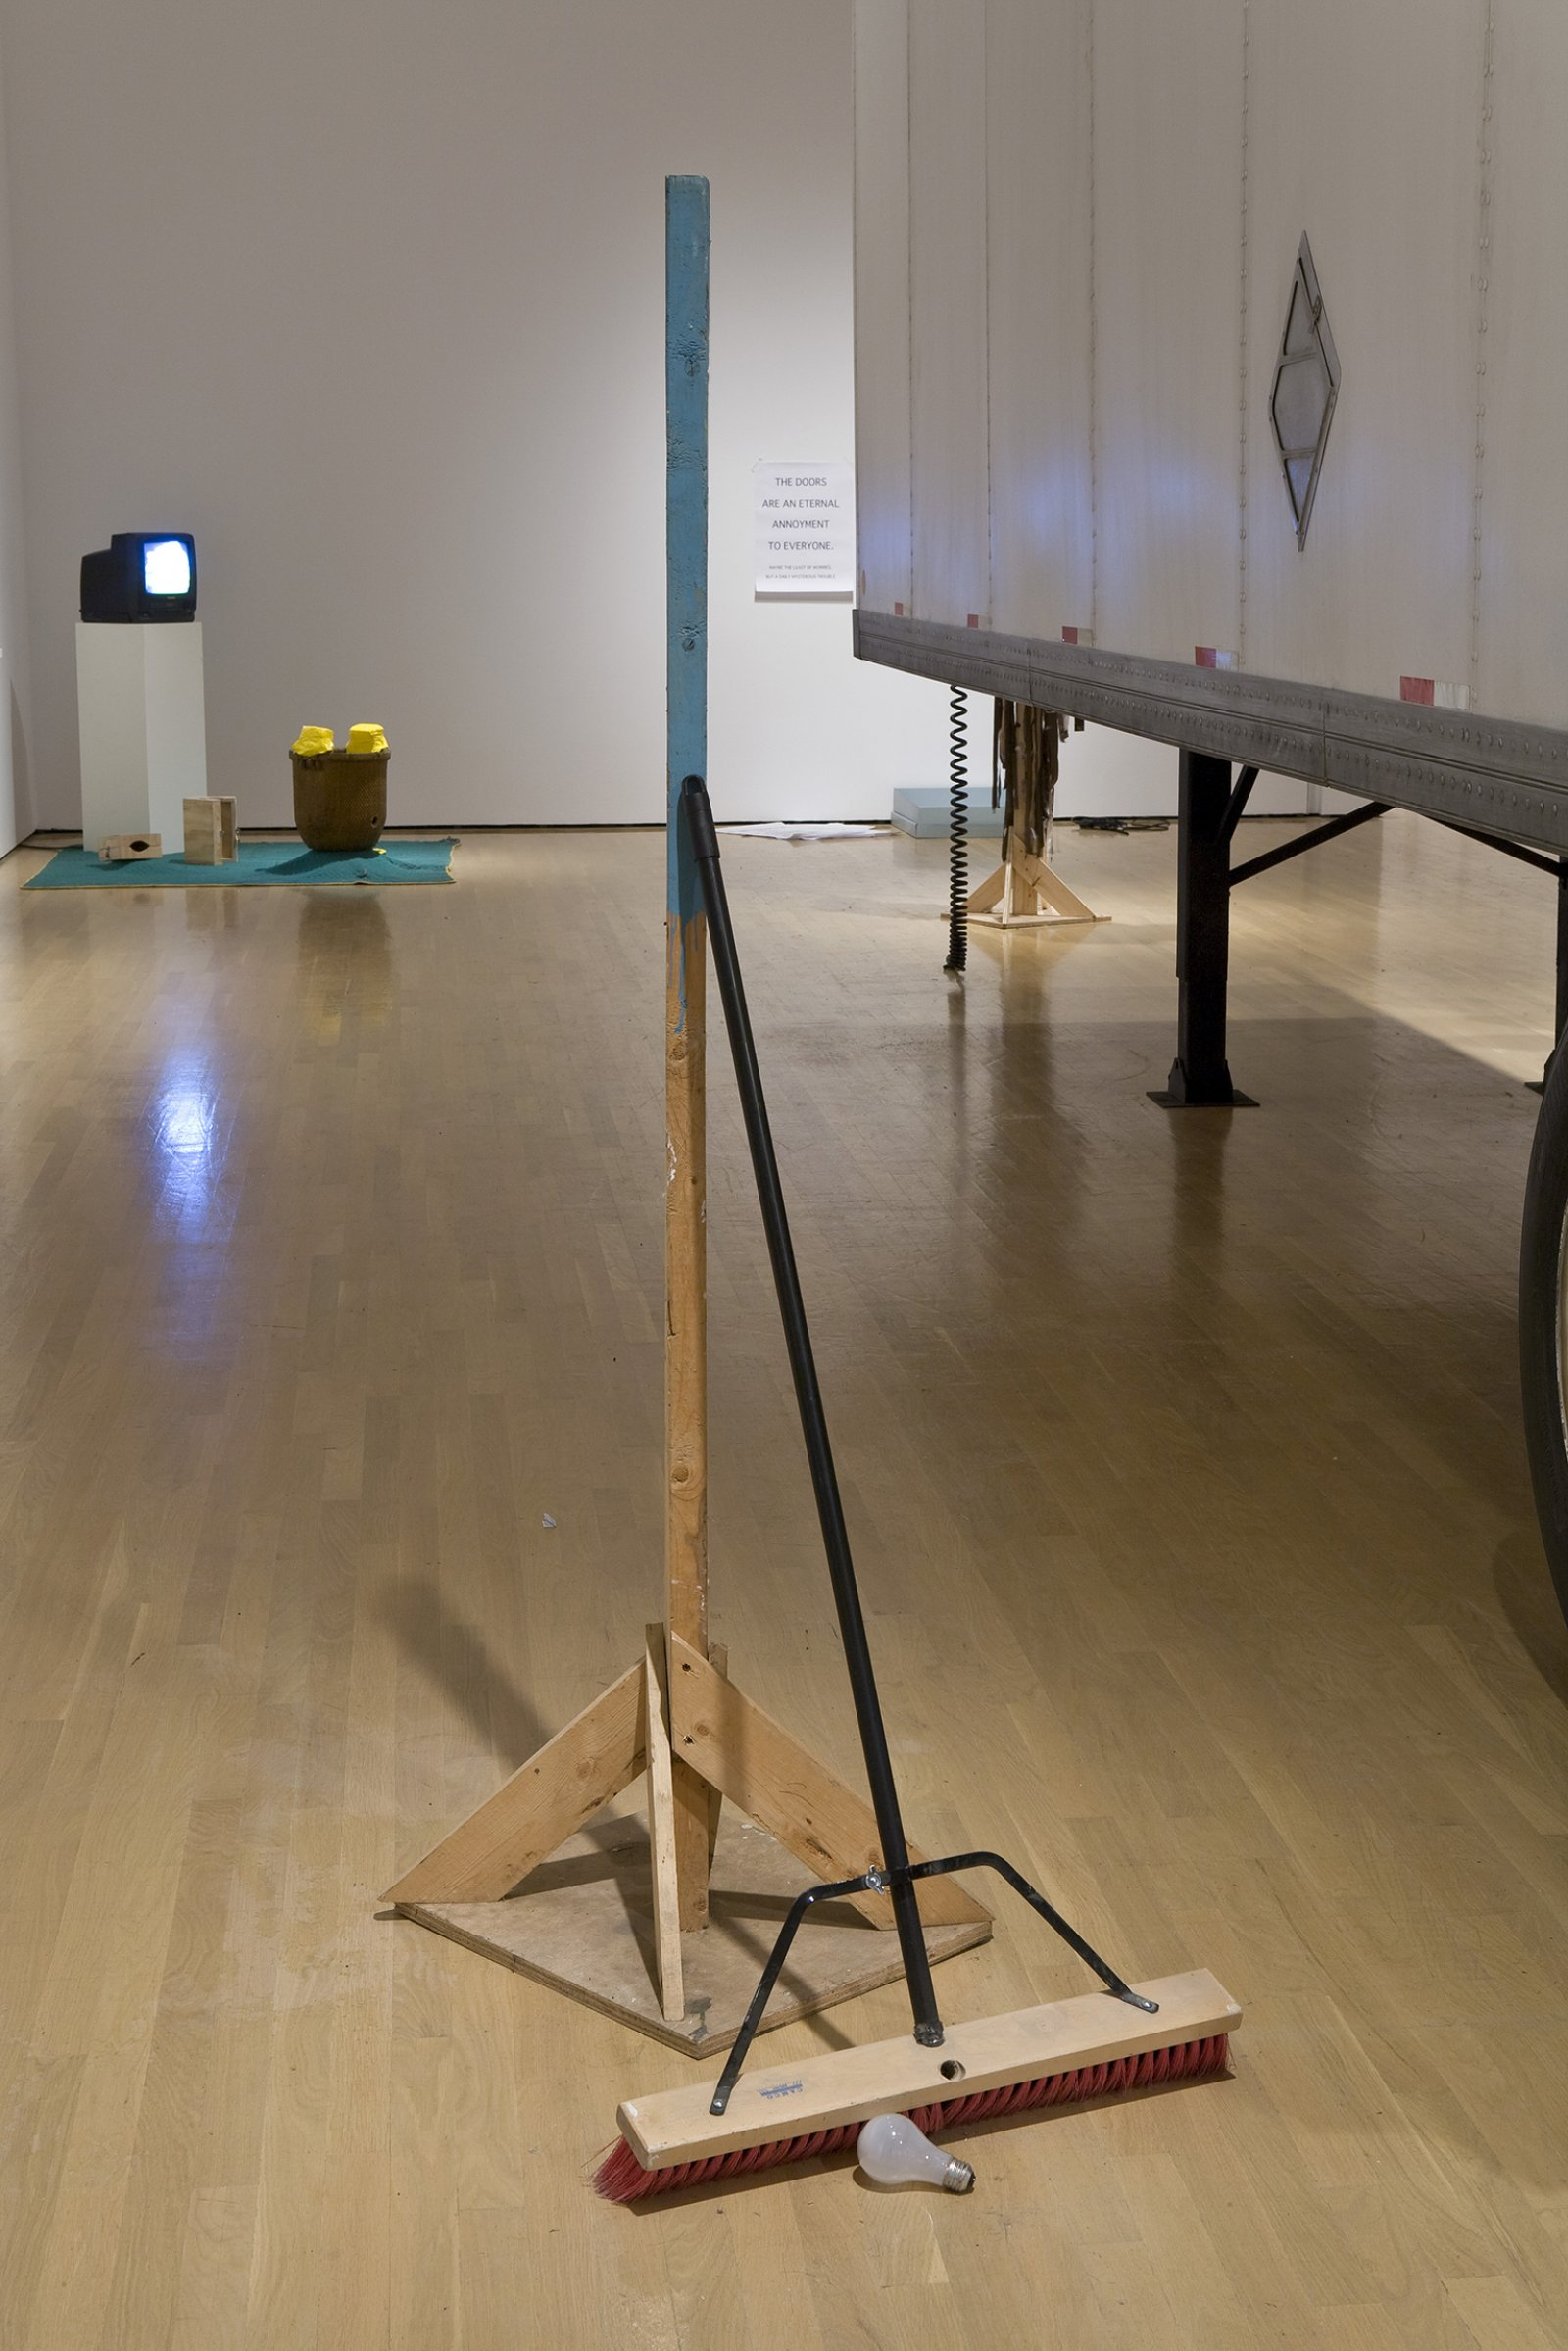 Geoffrey Farmer, I am by nature one and also many, dividing the single me into many, and even opposing them as great and small, light and dark, and in ten thousand other ways, 2006–2008, wooden post, broom, lightbulb, dimensions variable by Geoffrey Farmer